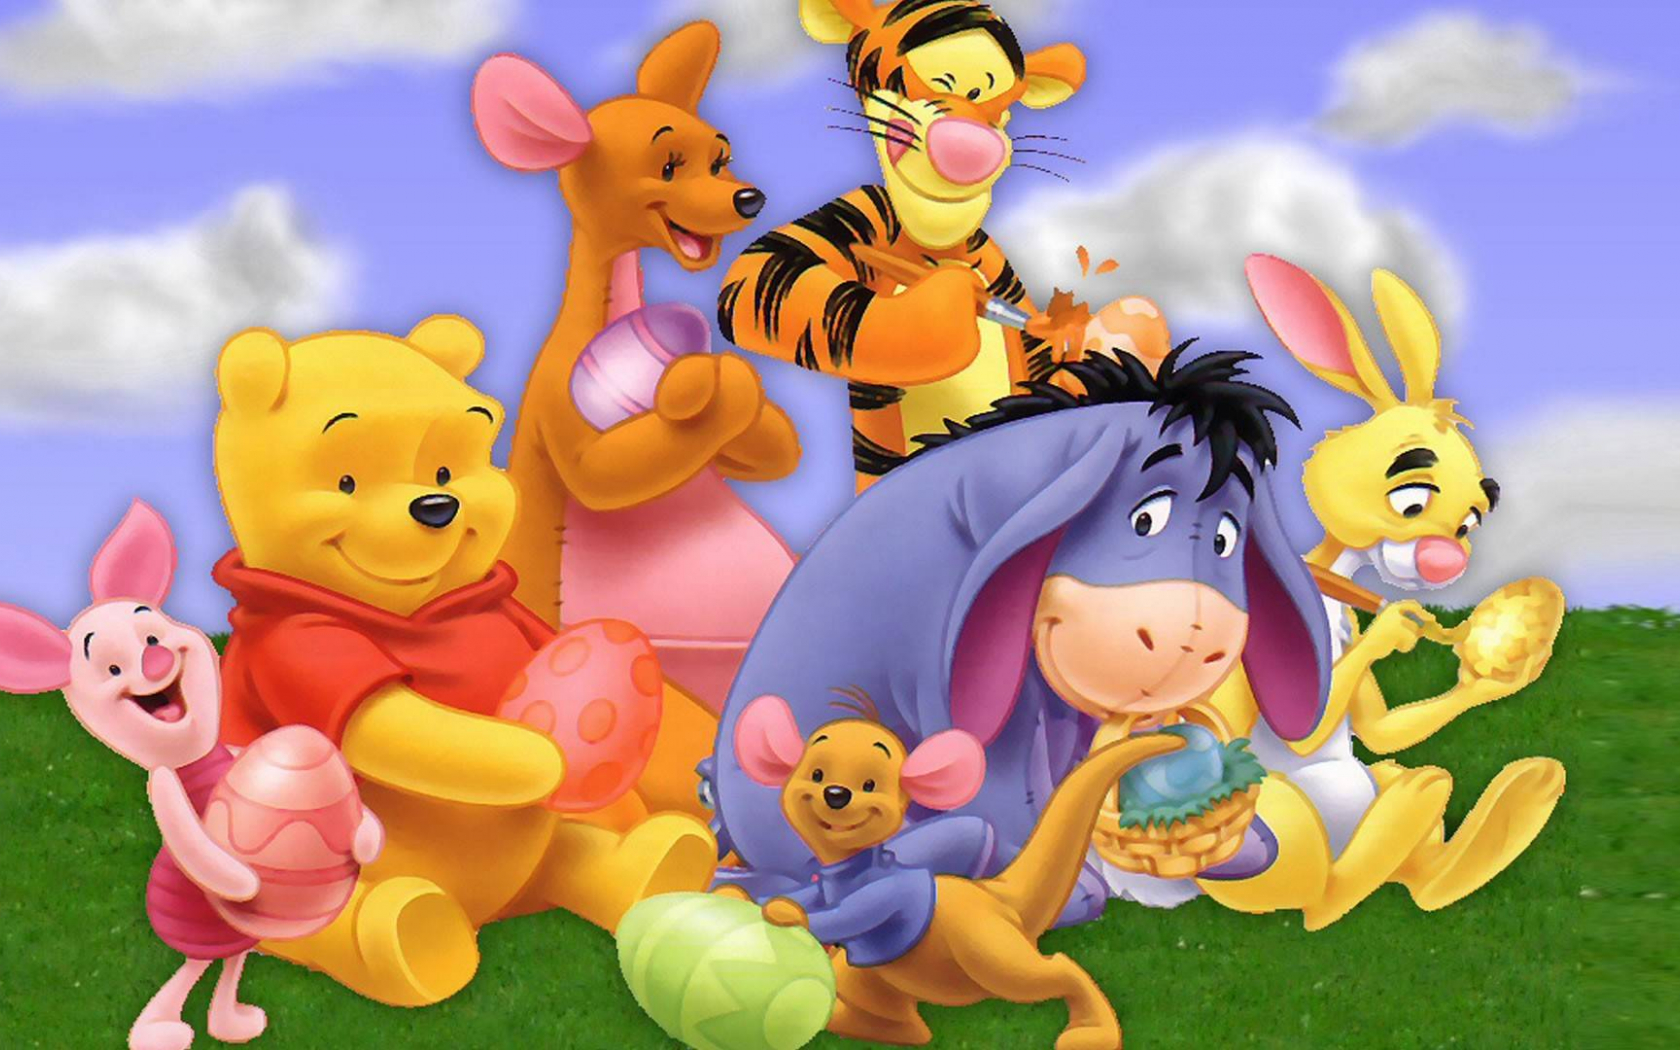 Free Download Baby Pooh Bear And Friends Wwwgalleryhipcom The 1920x1080 For Your Desktop Mobile Tablet Explore 78 Winnie The Pooh And Friends Wallpaper Winnie The Pooh And Friends Wallpaper